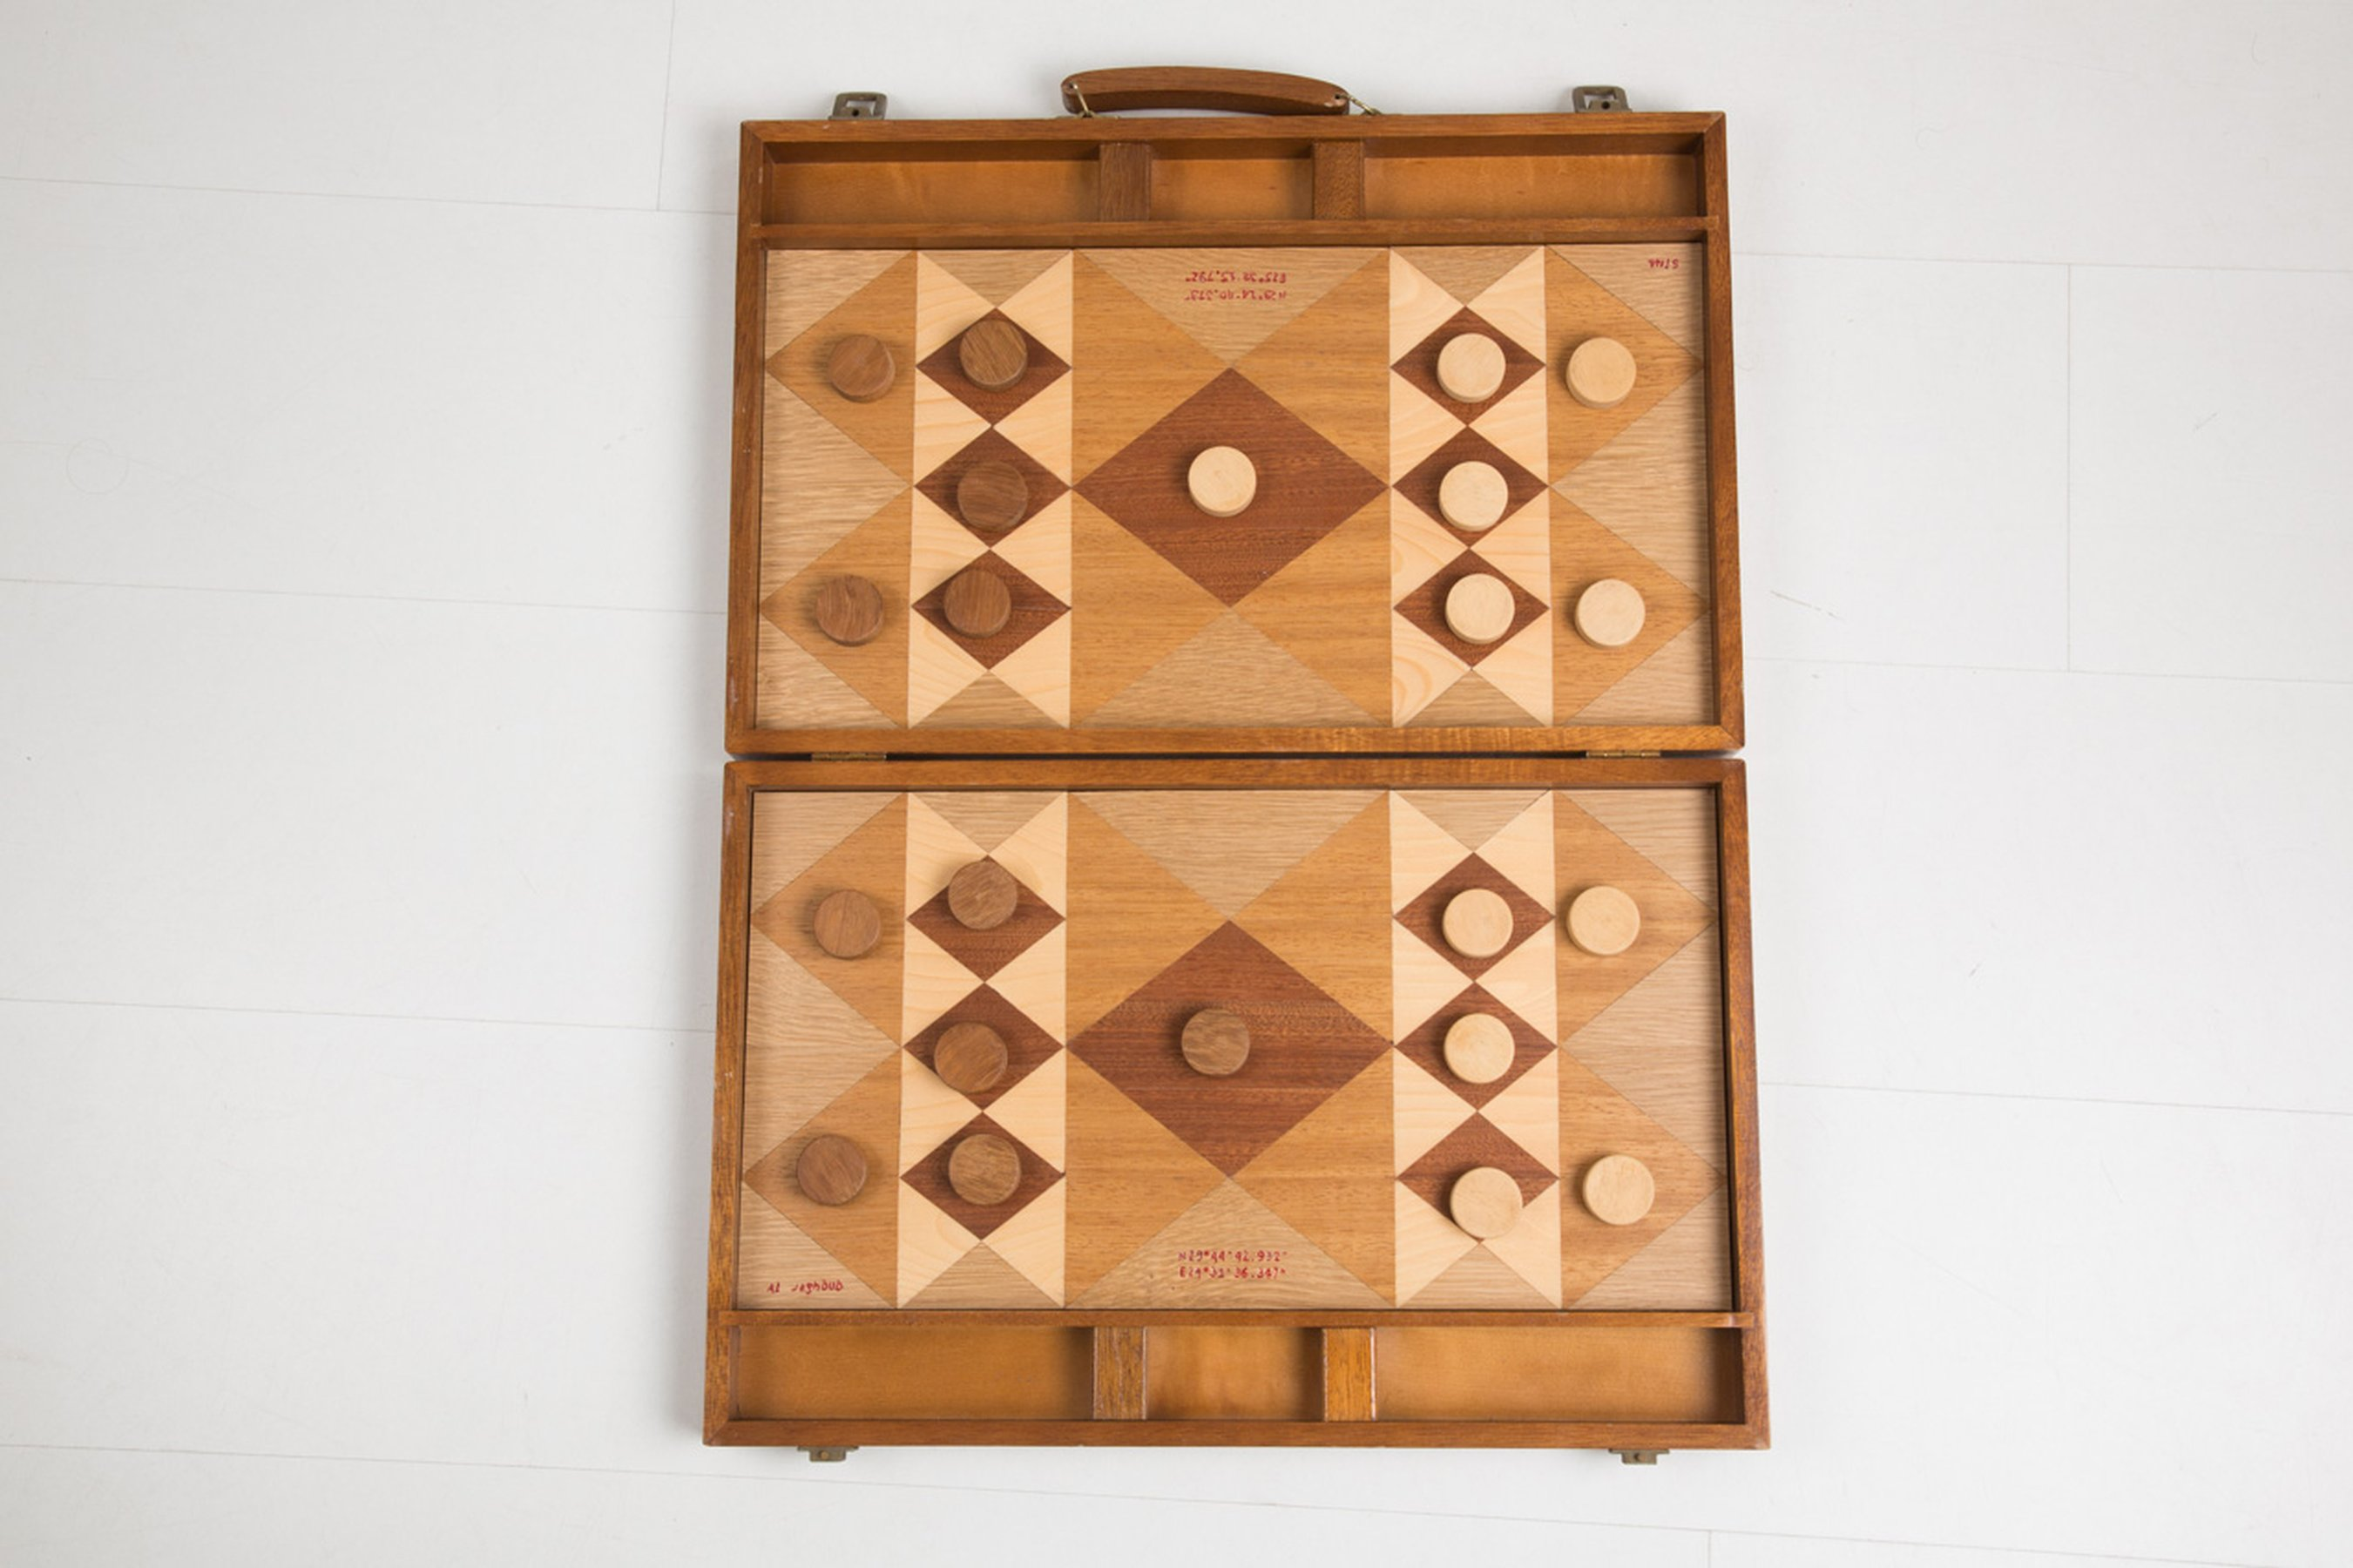 La montagna verde, 2011 Marquetry on wood 60 × 45 × 4 cm;